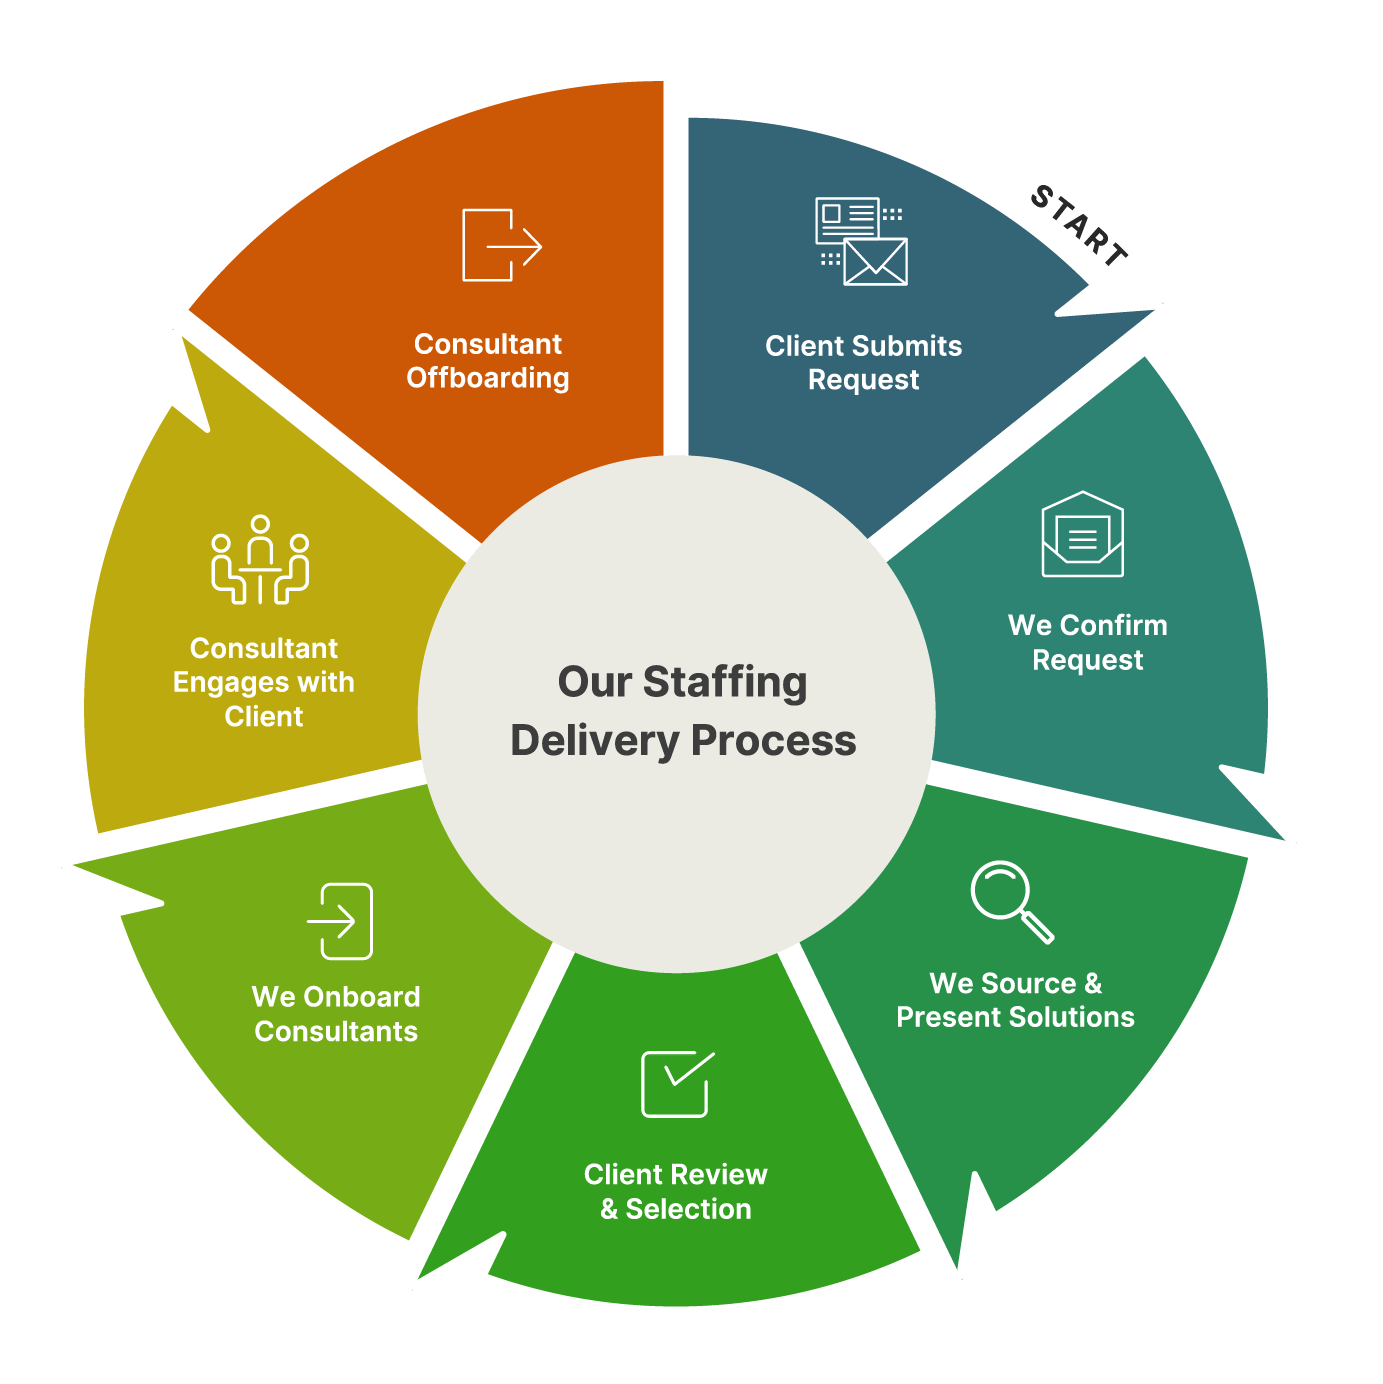 Our Staffing Delivery Process: Consultant Onboarding, Customer Request, Request Confirmation, Sourcing & Presentation, Review & Selection, Consultant Onboarding, and Consultant Engagement